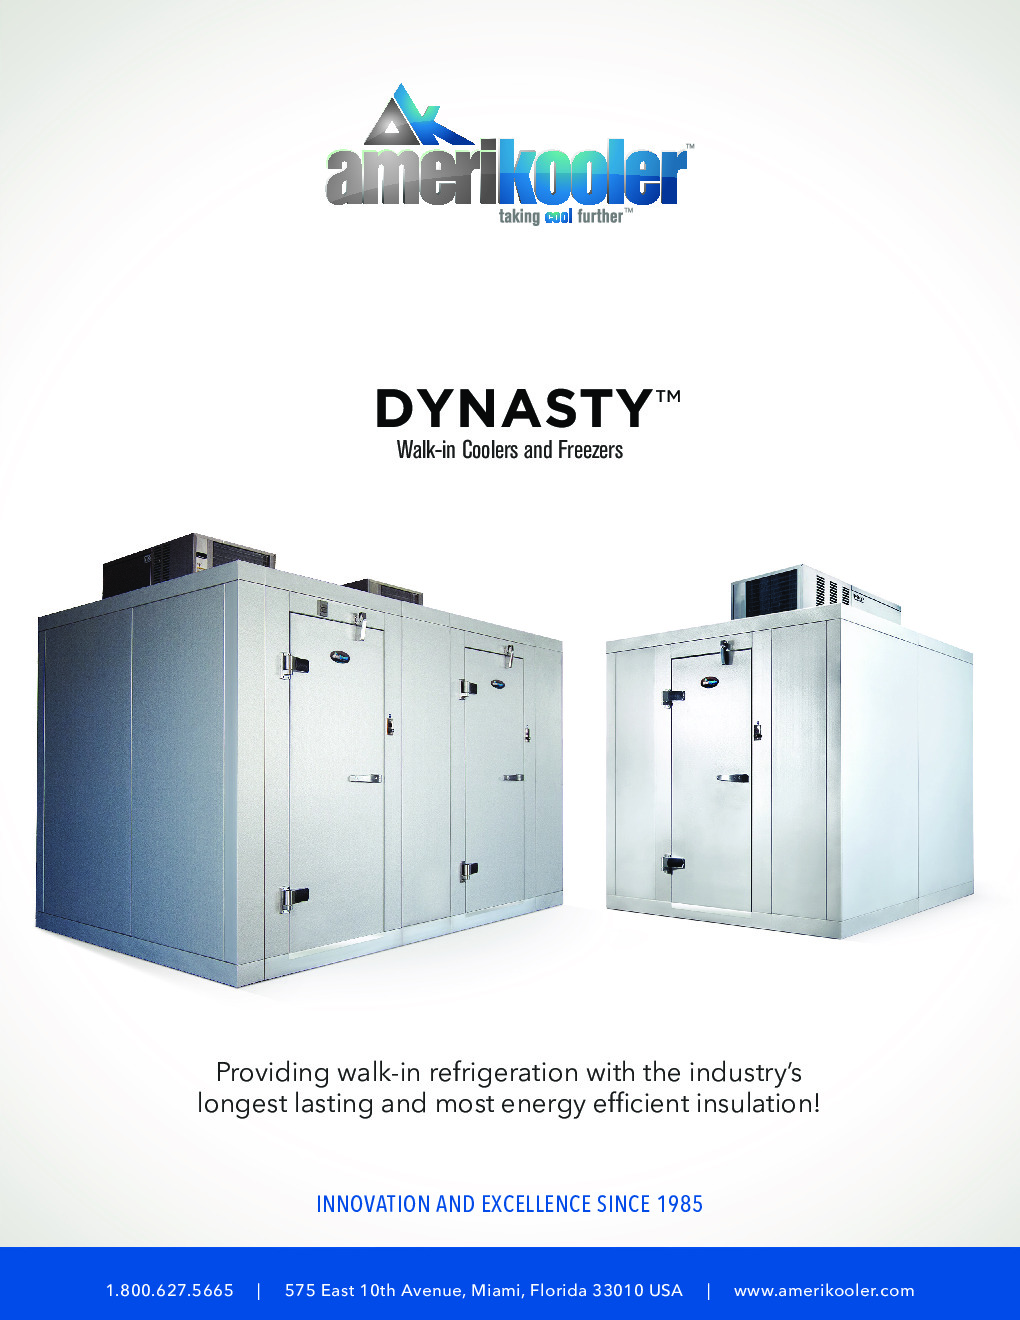 AmeriKooler DW101477F-7/7-RM 10' X 14' Walk-In Cooler, 7' L Cooler with Floor and 7' L Freezer, Remote